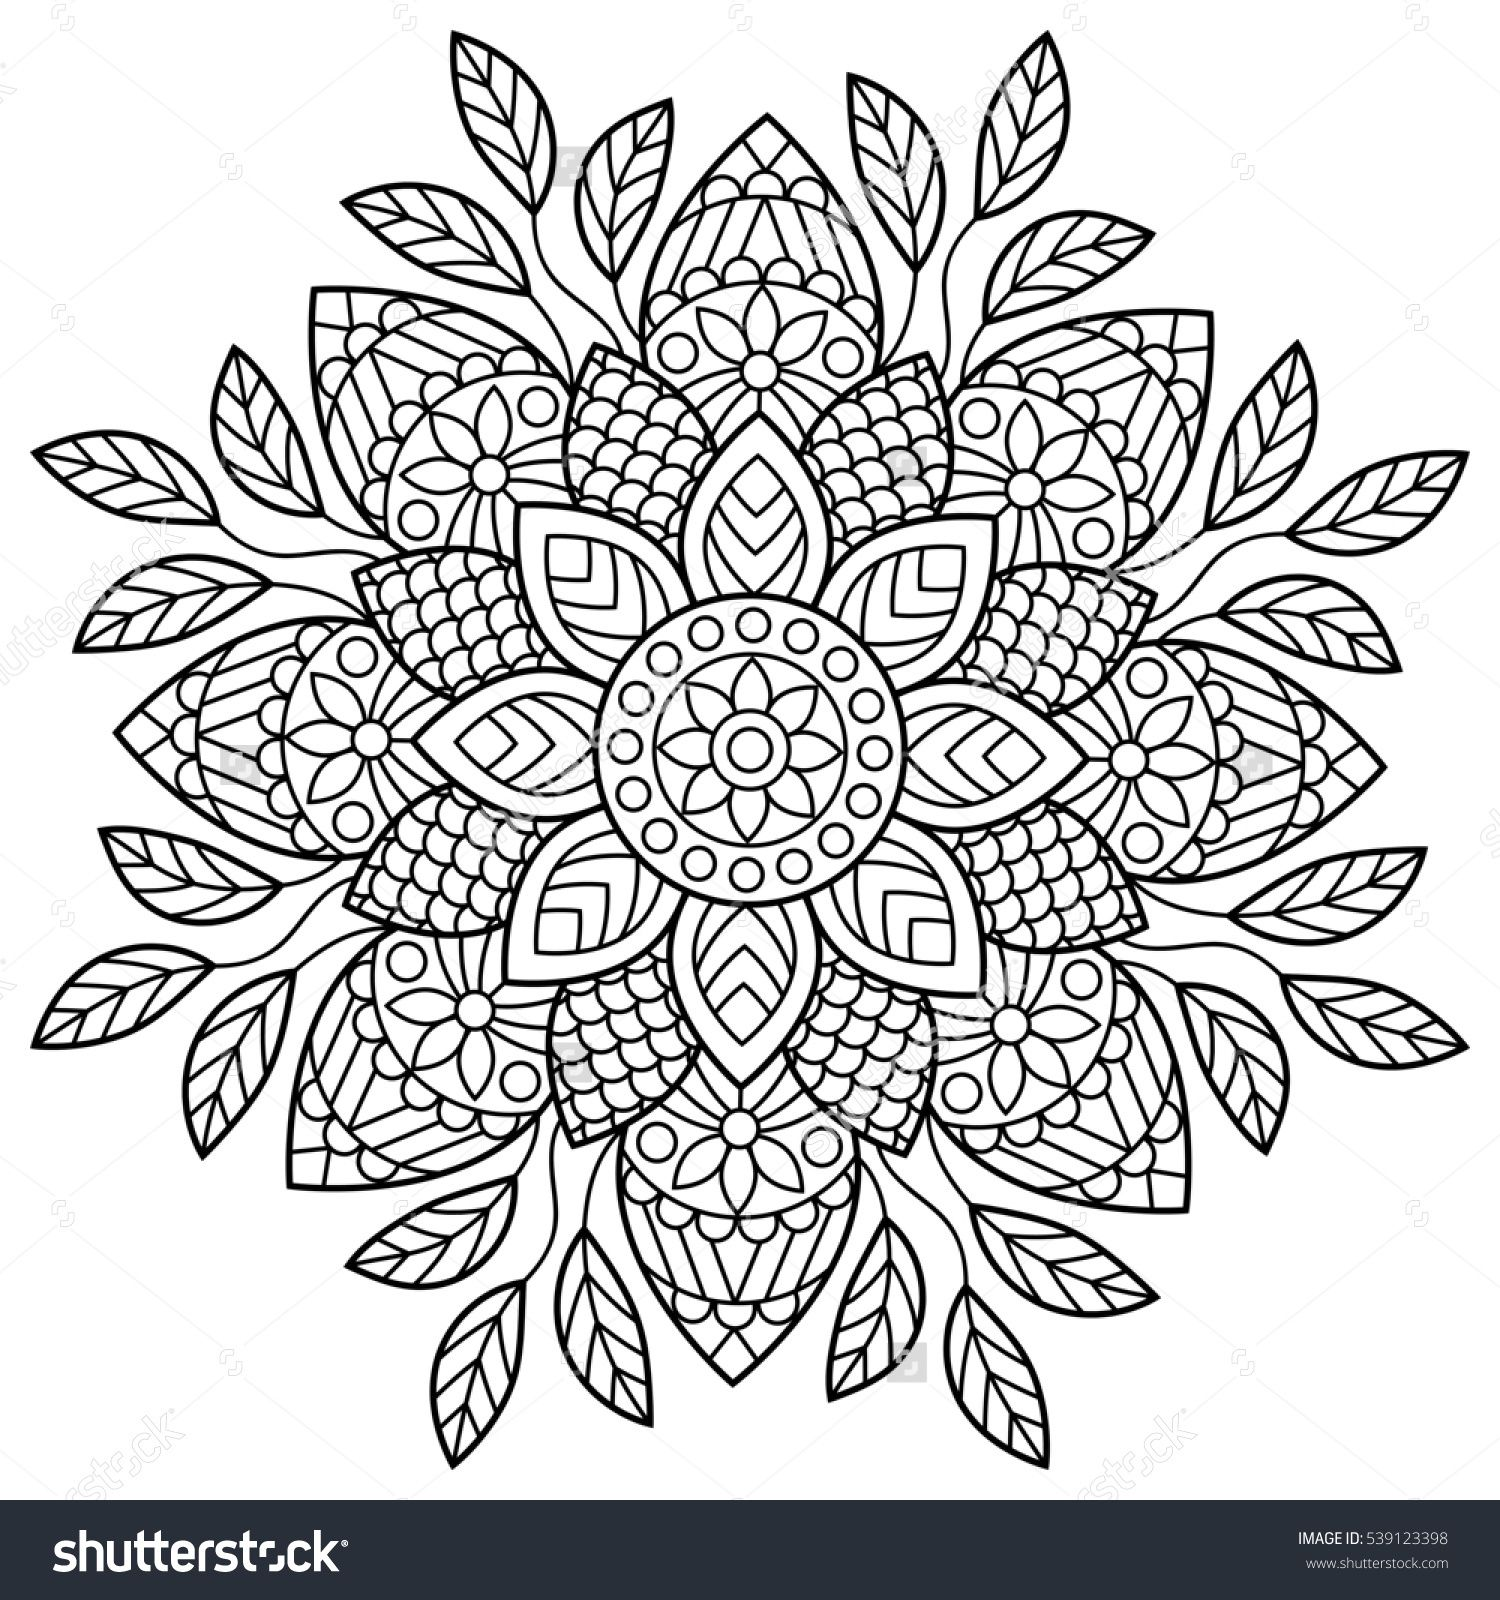 Mandala Coloring Book Pages Indian Antistress Medallion Abstract Islamic Flower Arabic Henna Design Yoga Symbol White Background Black Outline